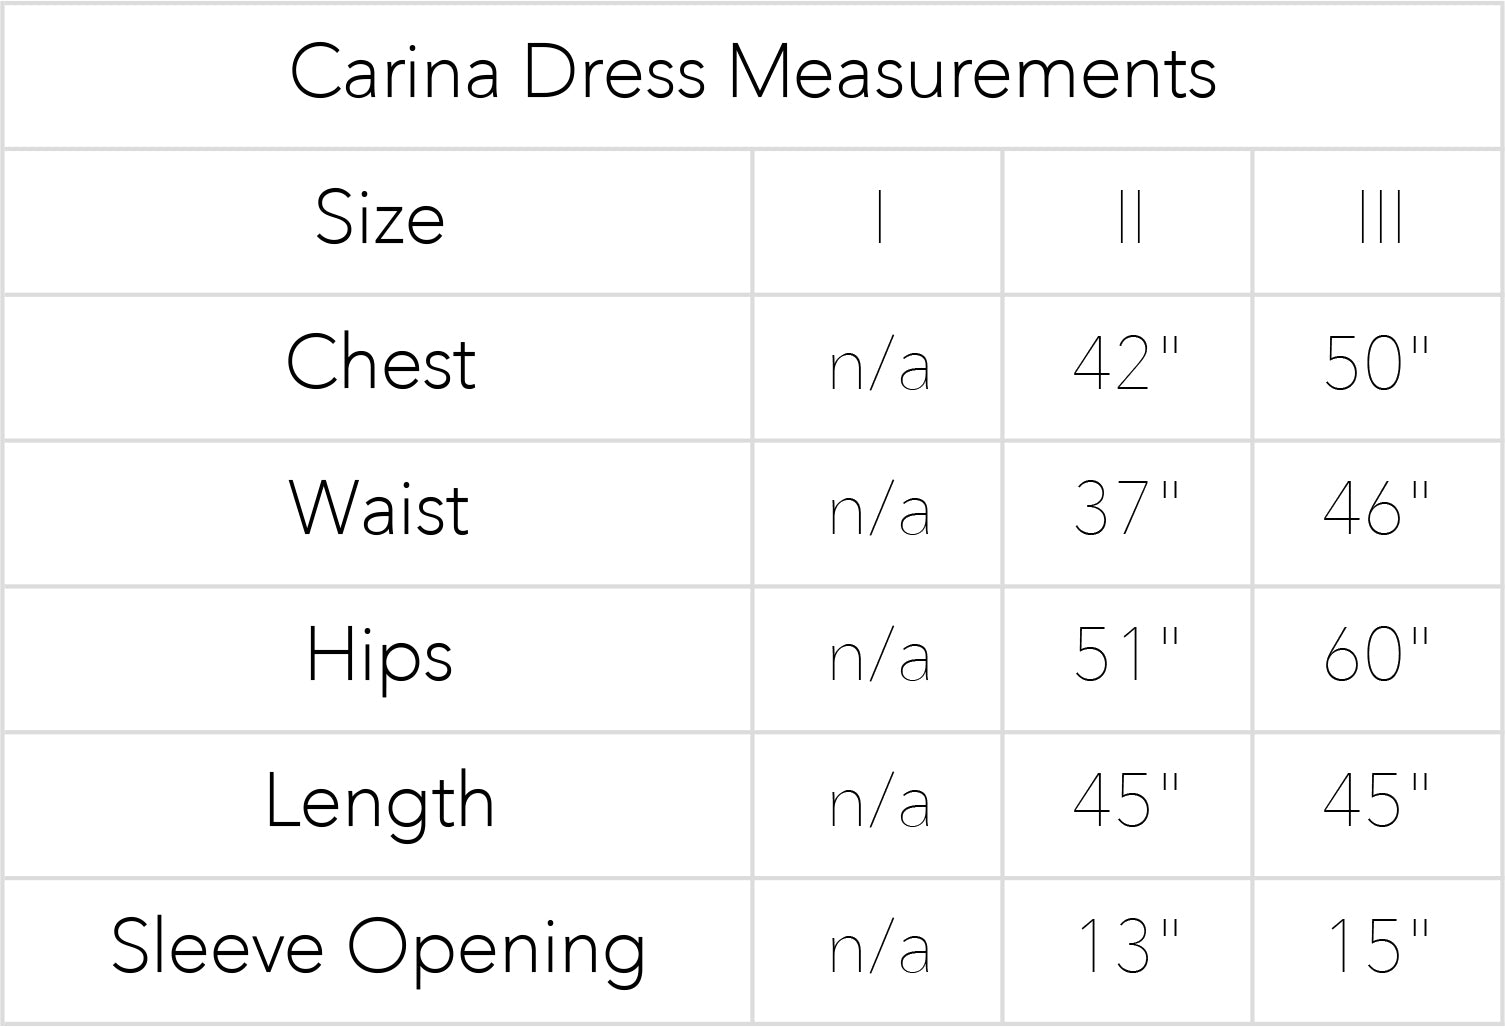 Carina Dress Measurements